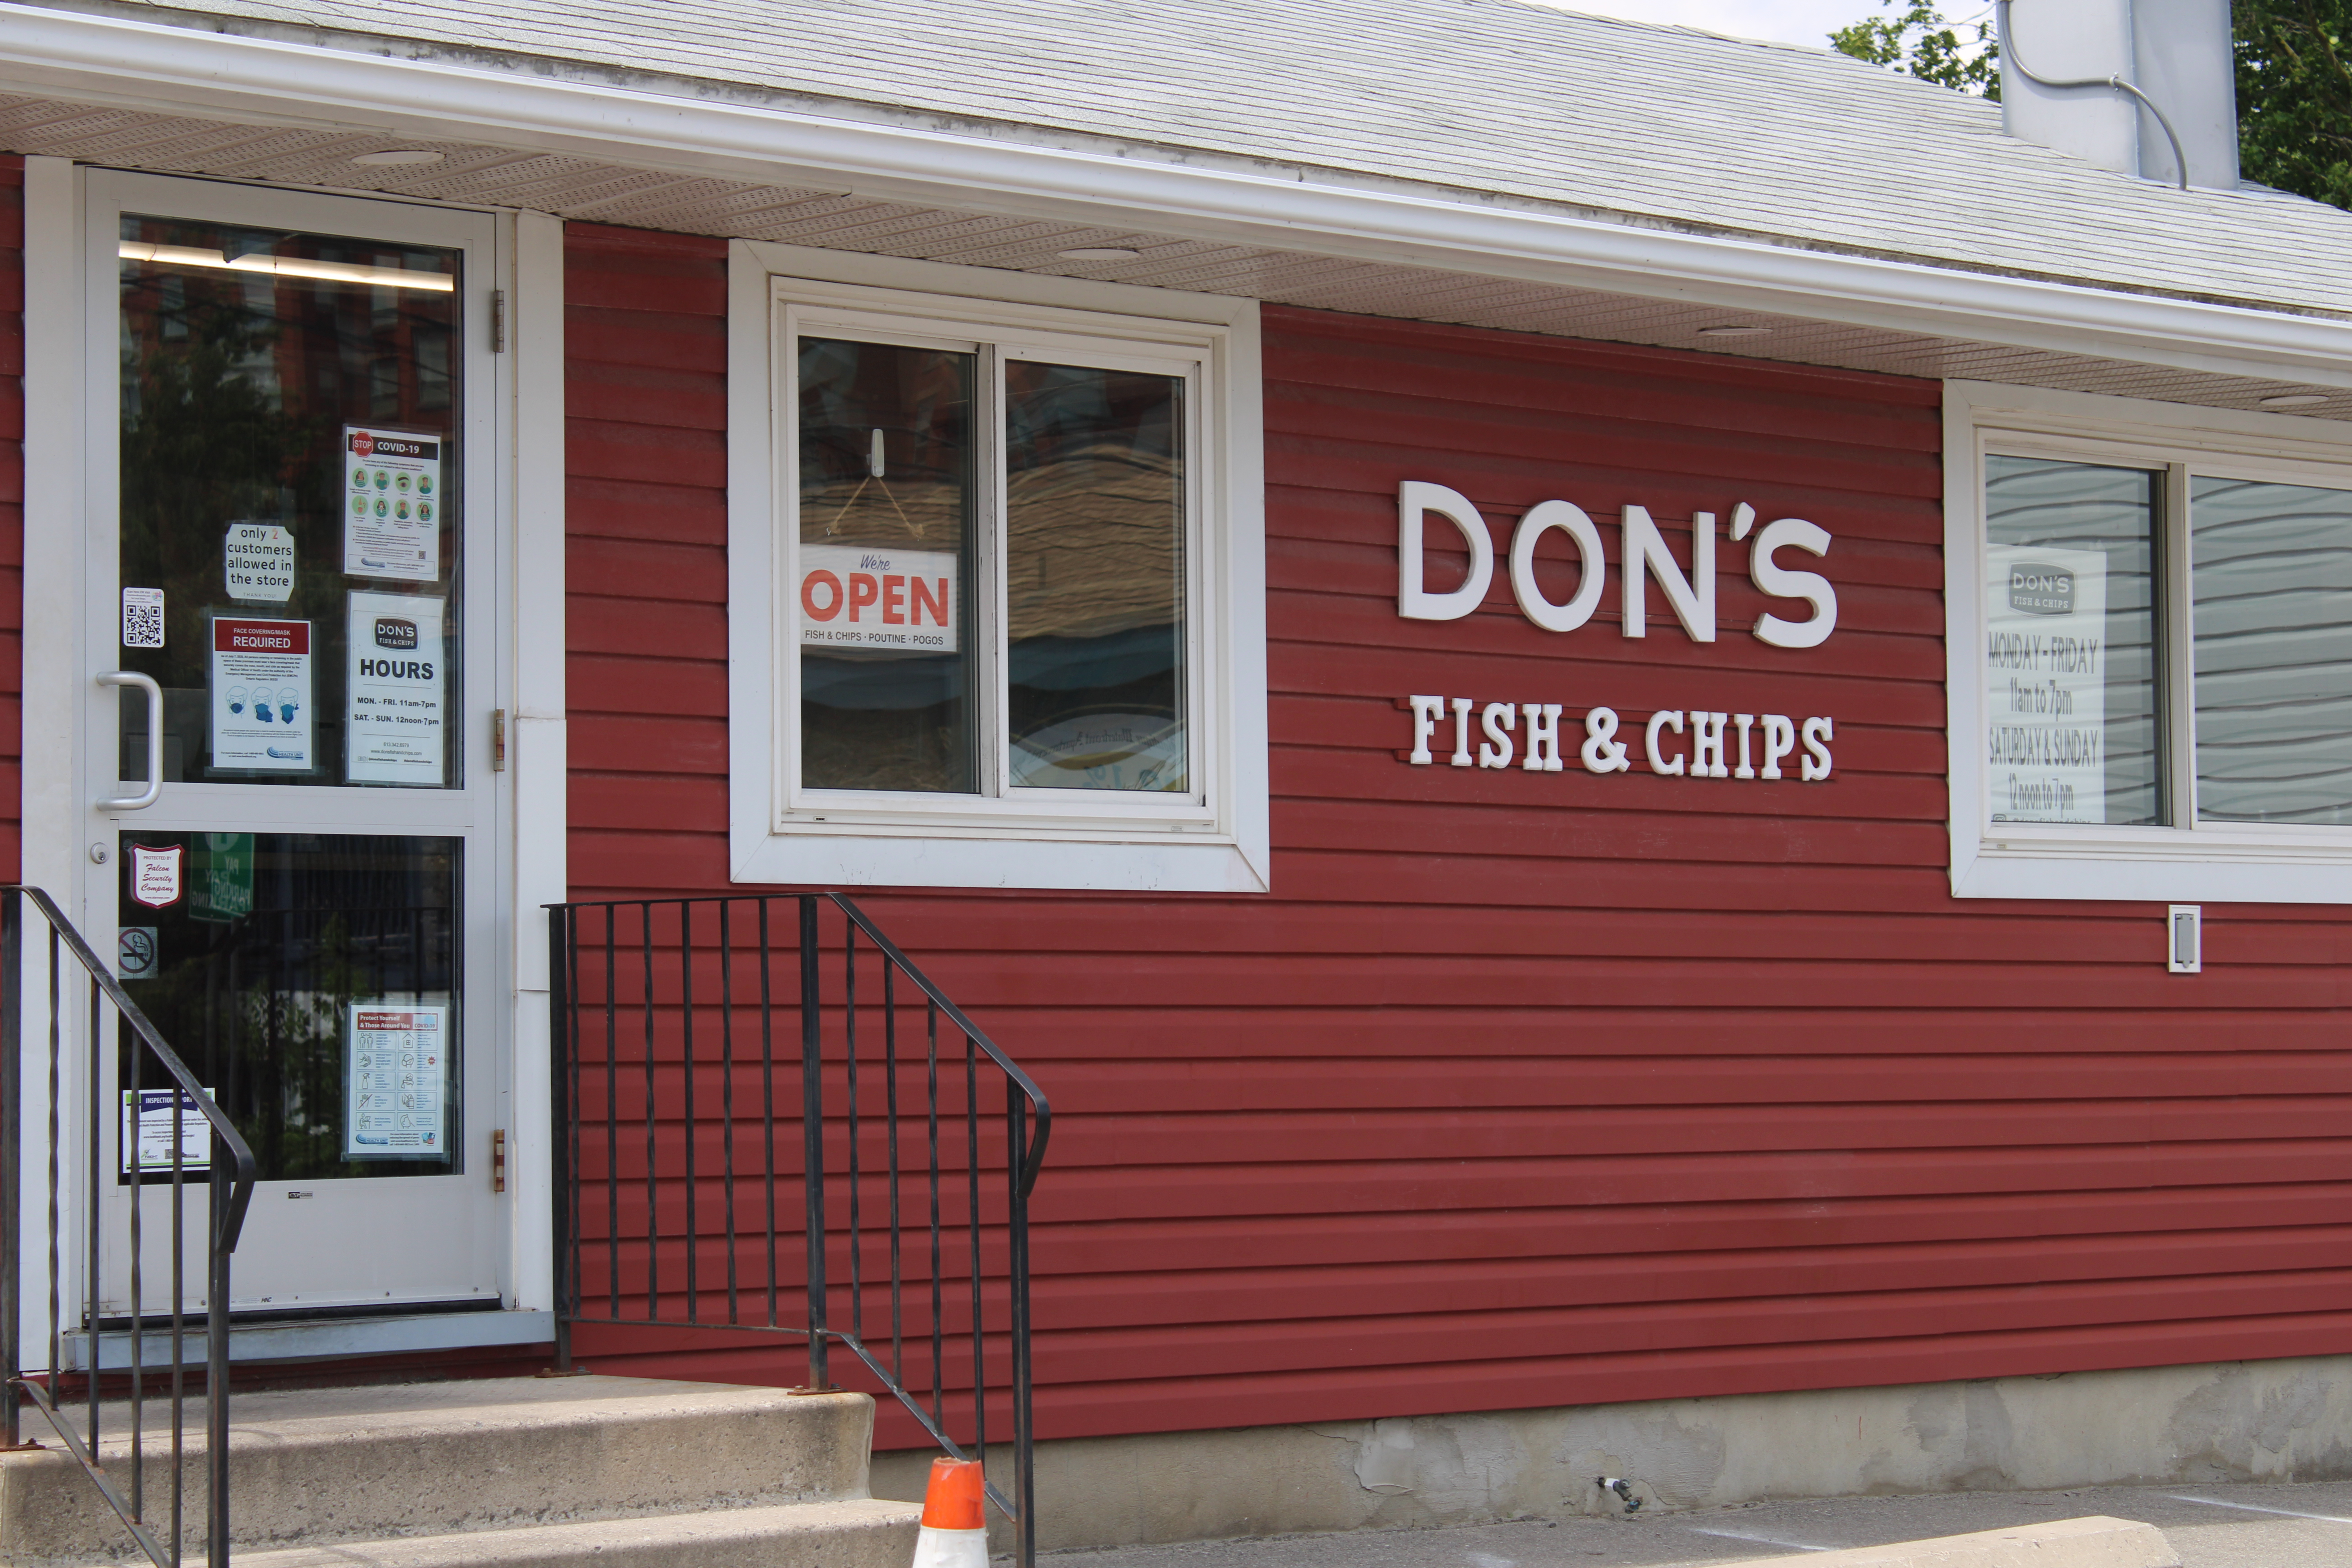 Don's Fish & Chips